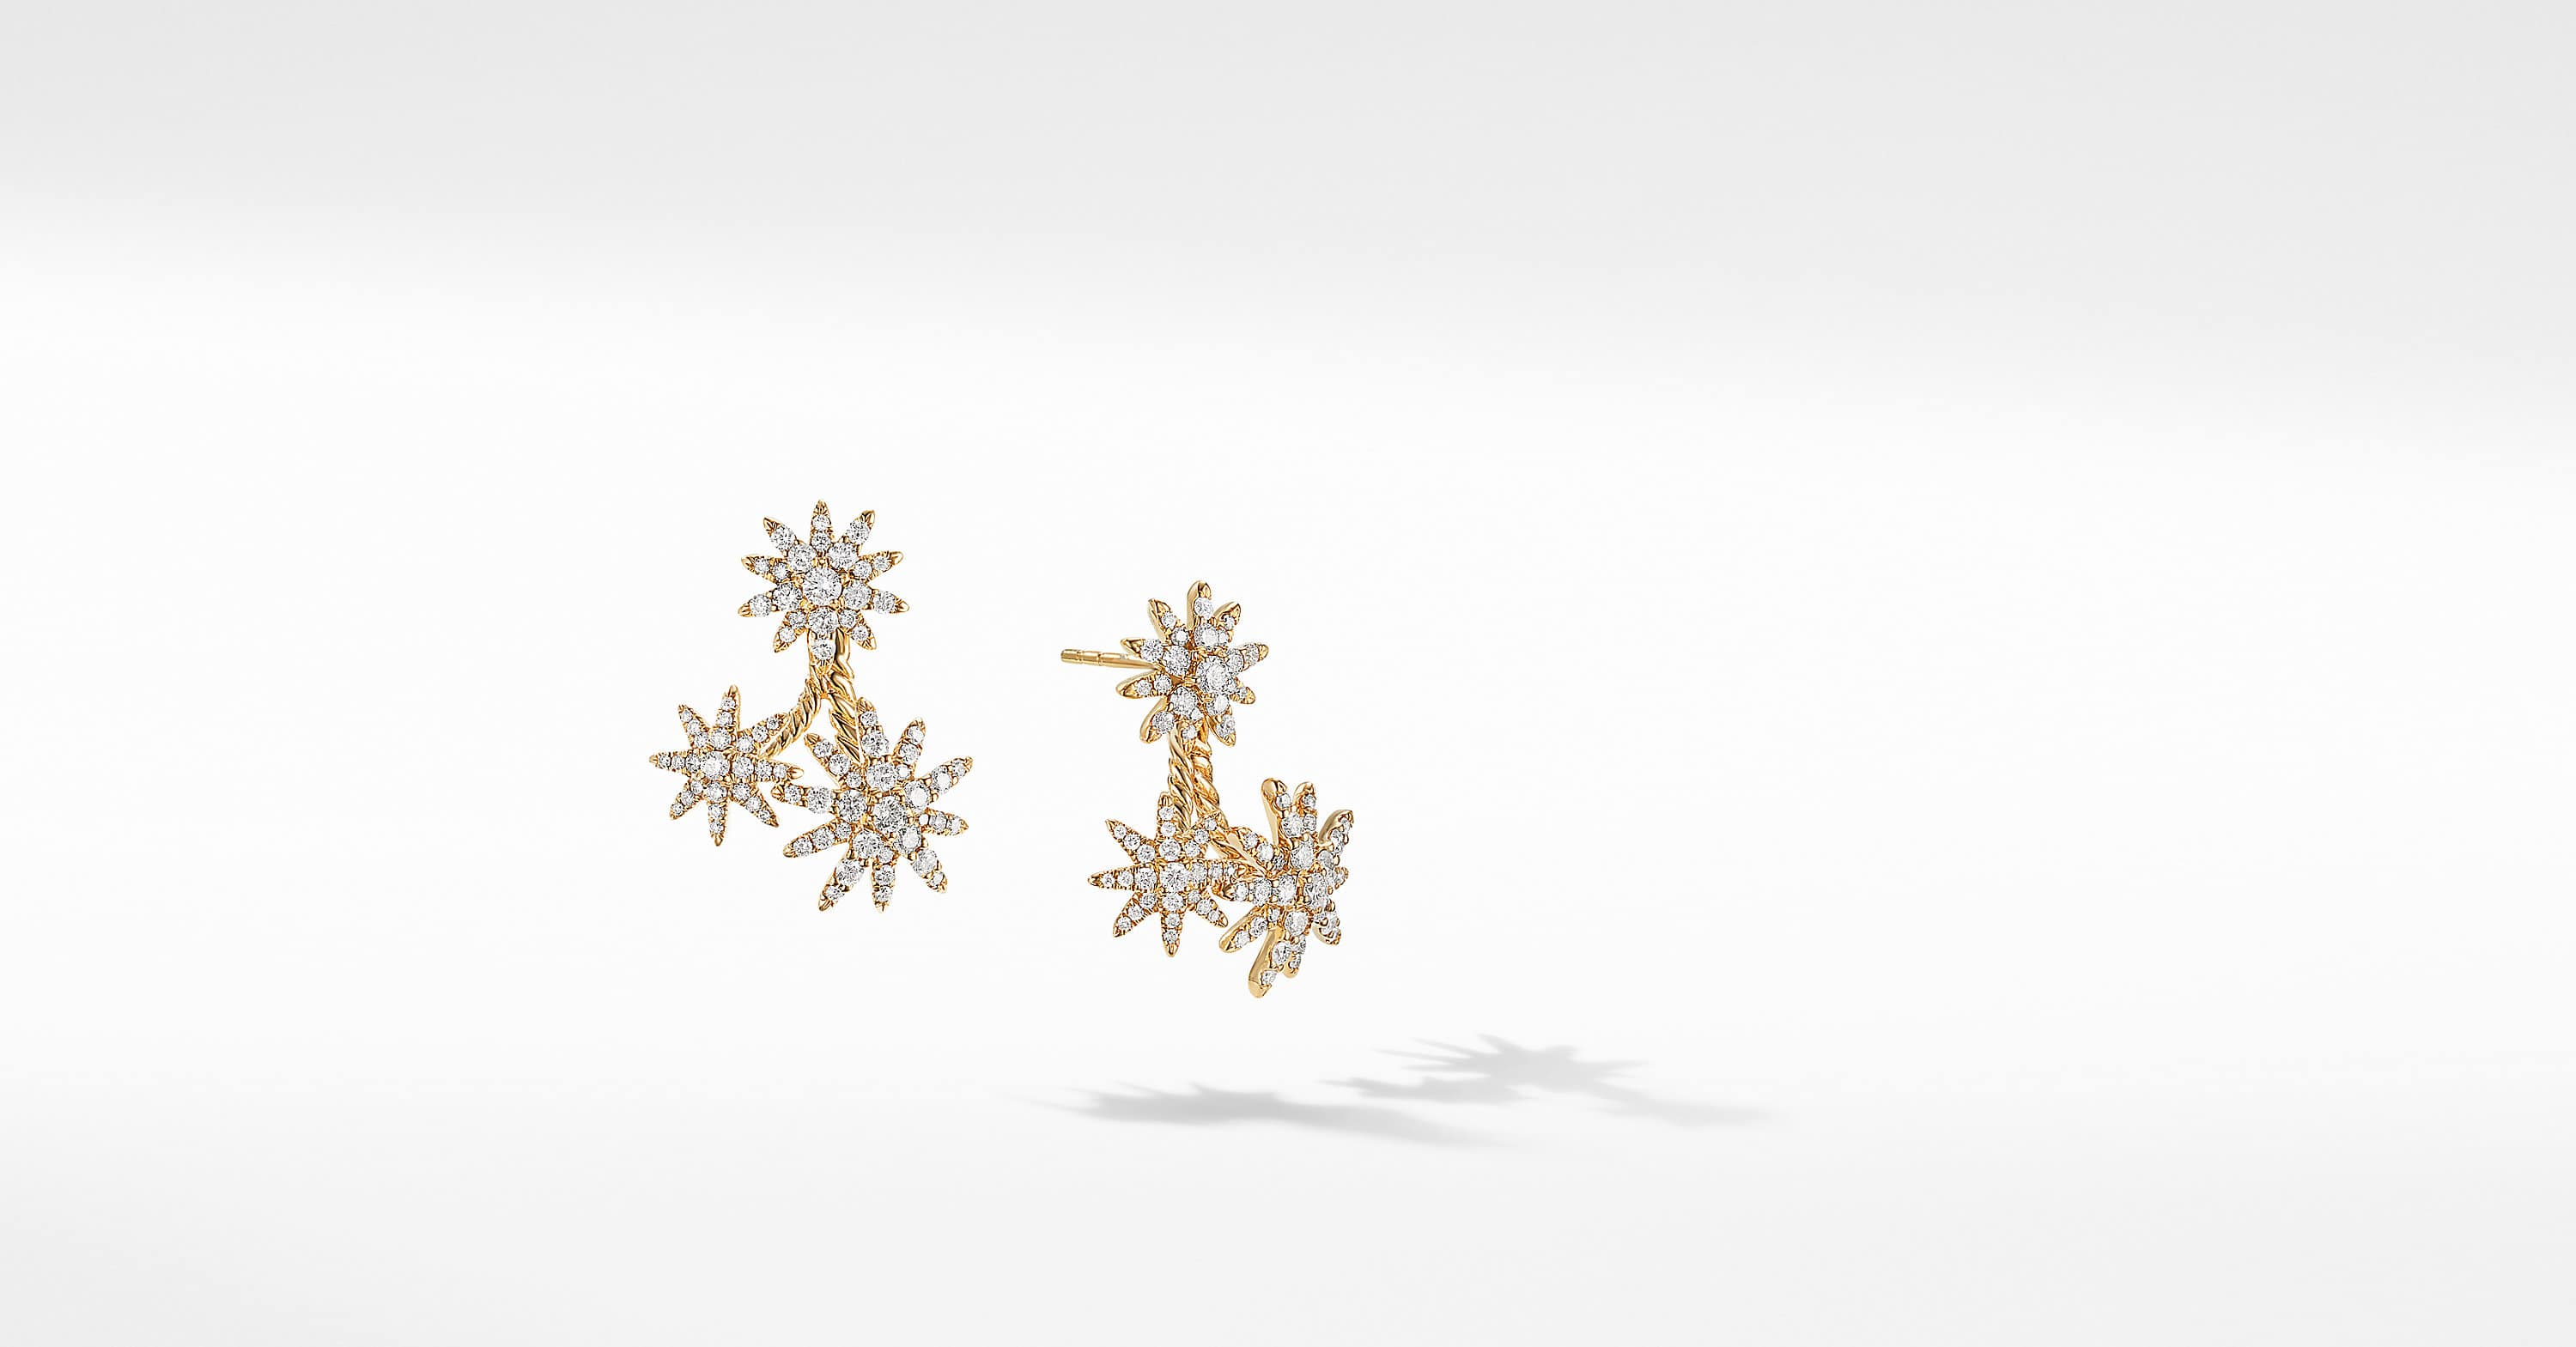 Starburst Cluster Earrings in 18K Yellow Gold with Full Pavé